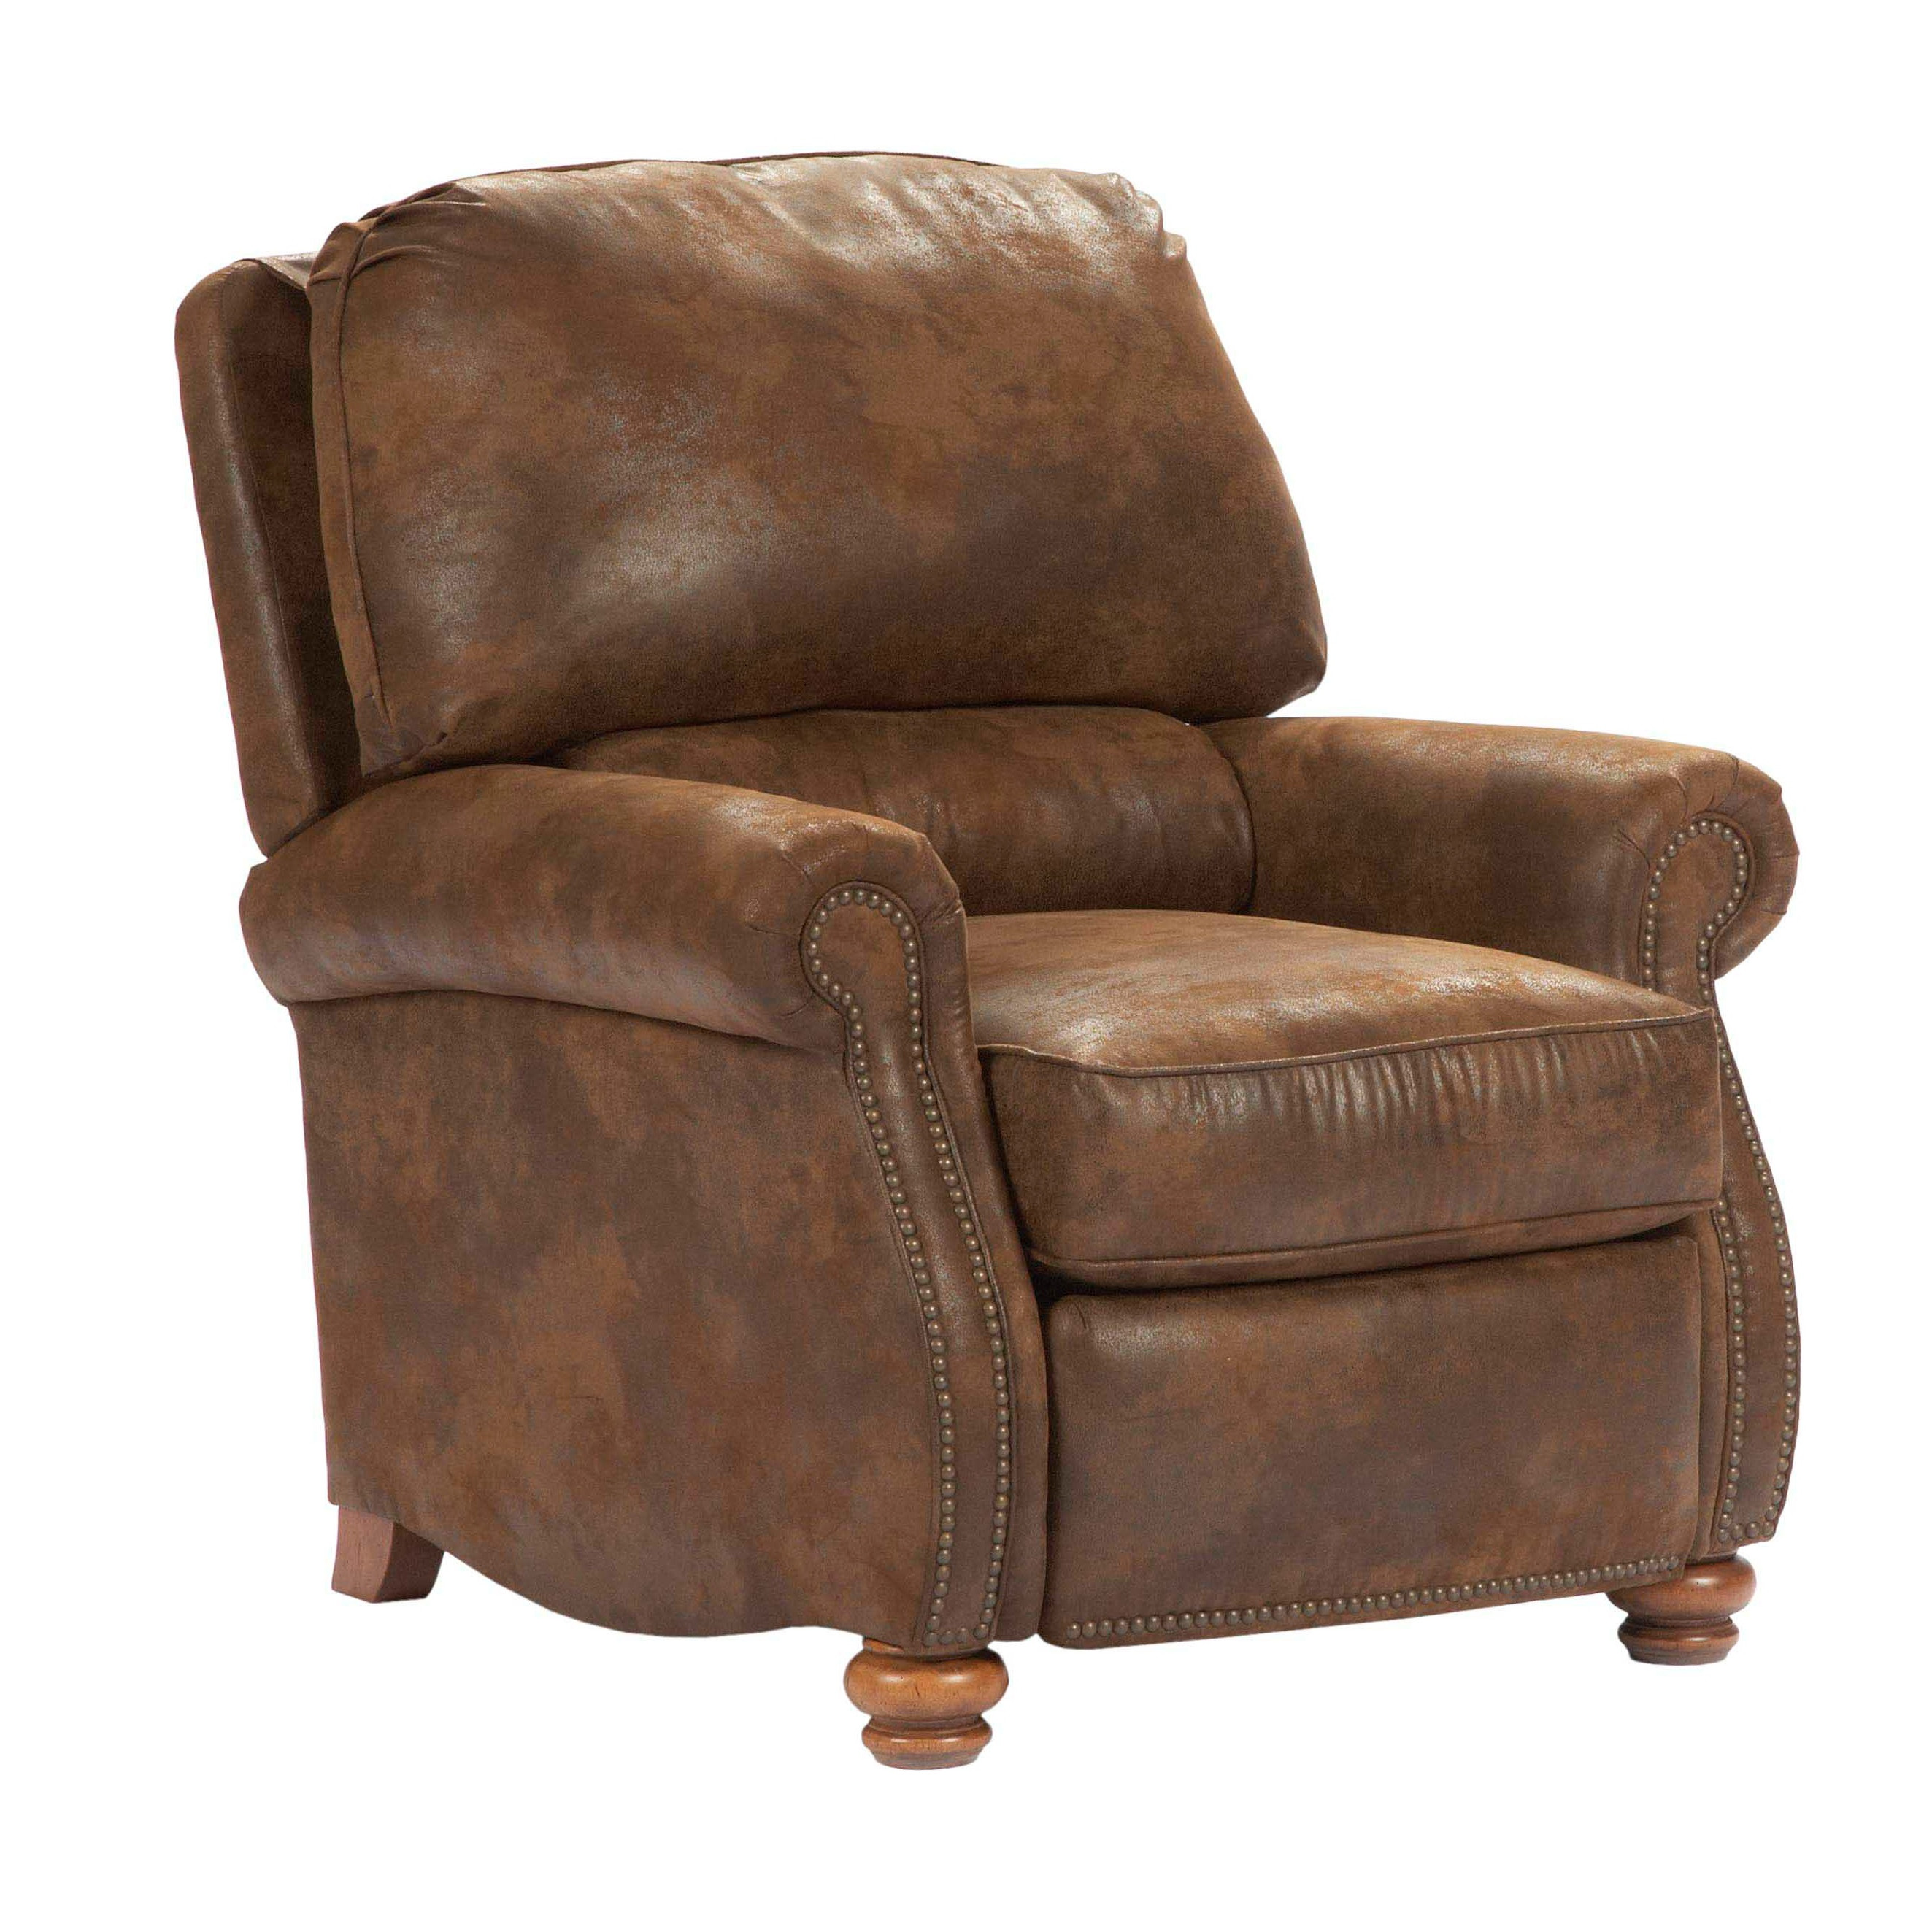 Wondrous Laramie Recliner Customize Sofas And Sectionals Alphanode Cool Chair Designs And Ideas Alphanodeonline